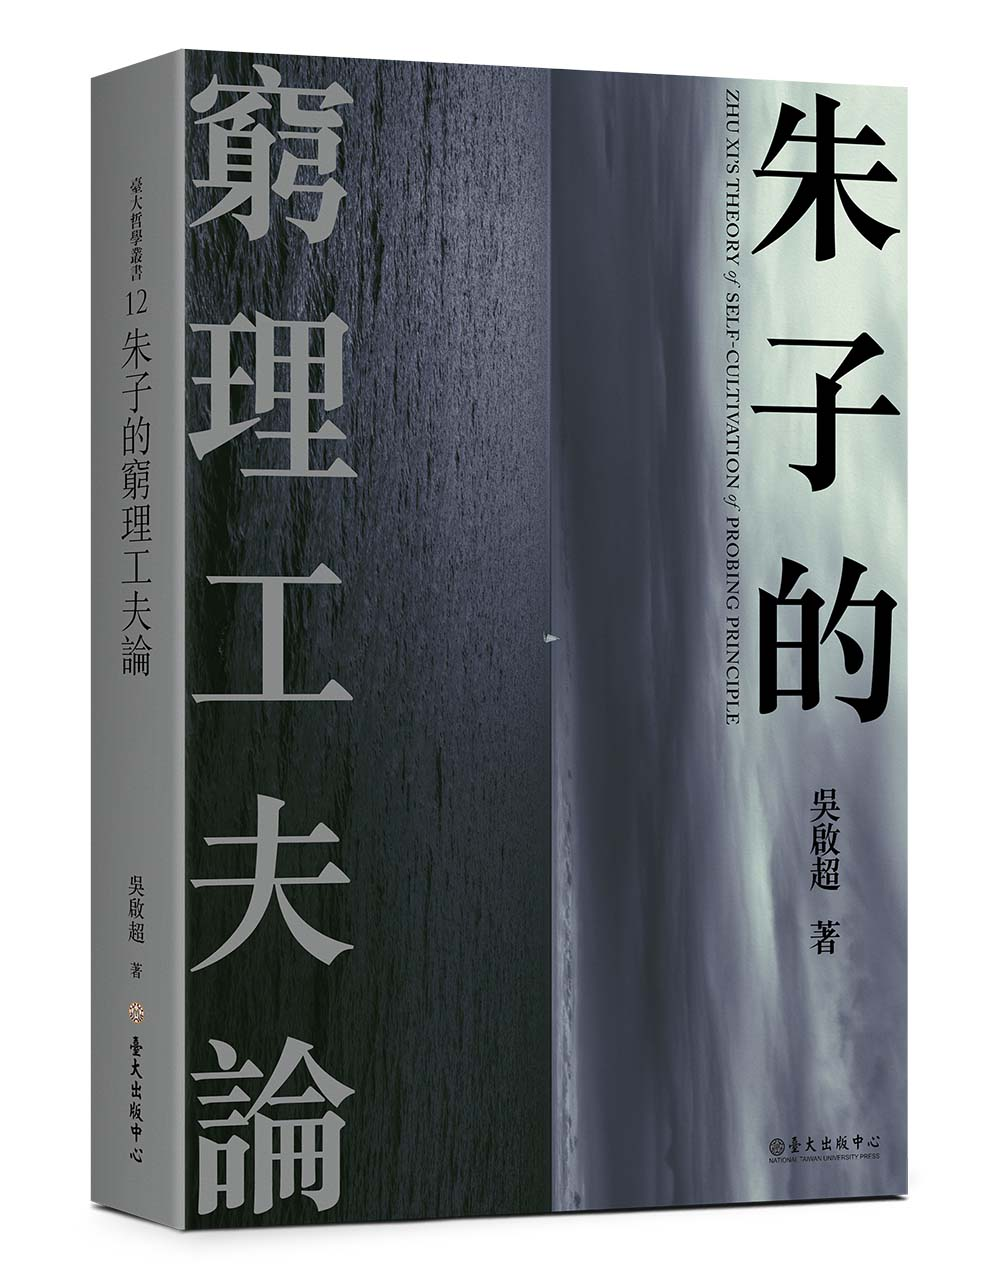 Zhu Xi's Theory of Self-Cultivation of Probing Principle